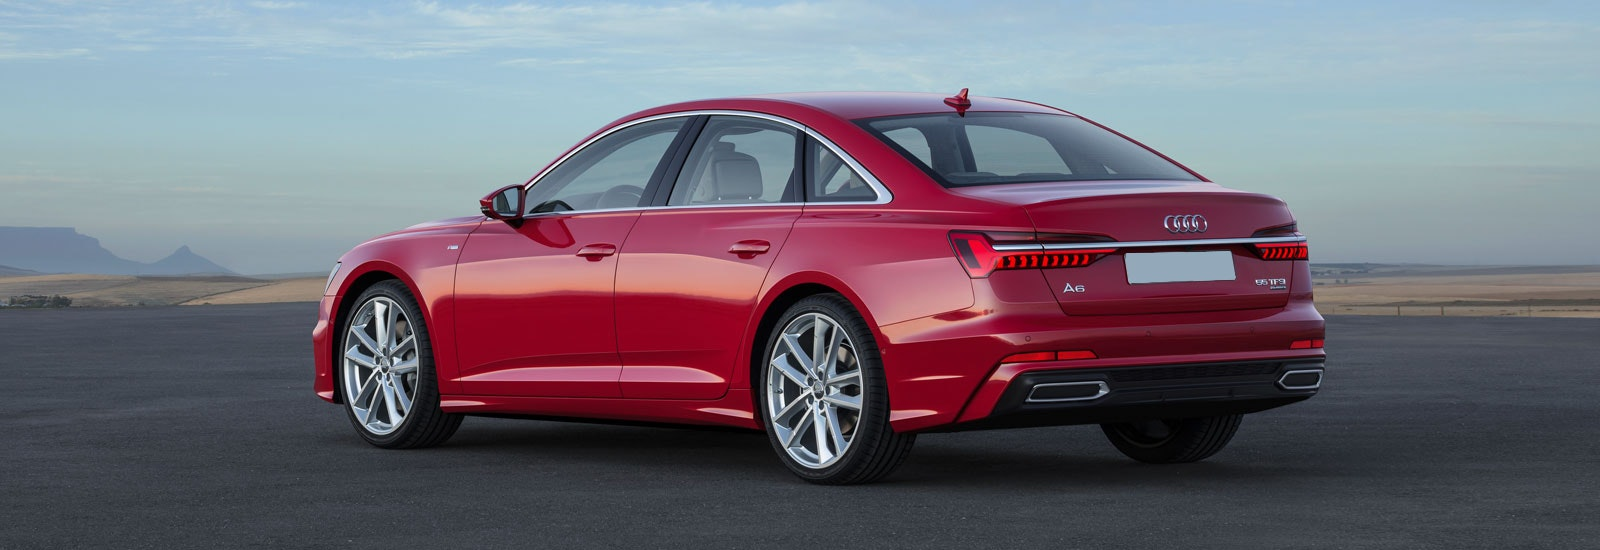 Audi A8 2018 Carwow >> 2018-19 Audi A6 price, specs and release date | carwow